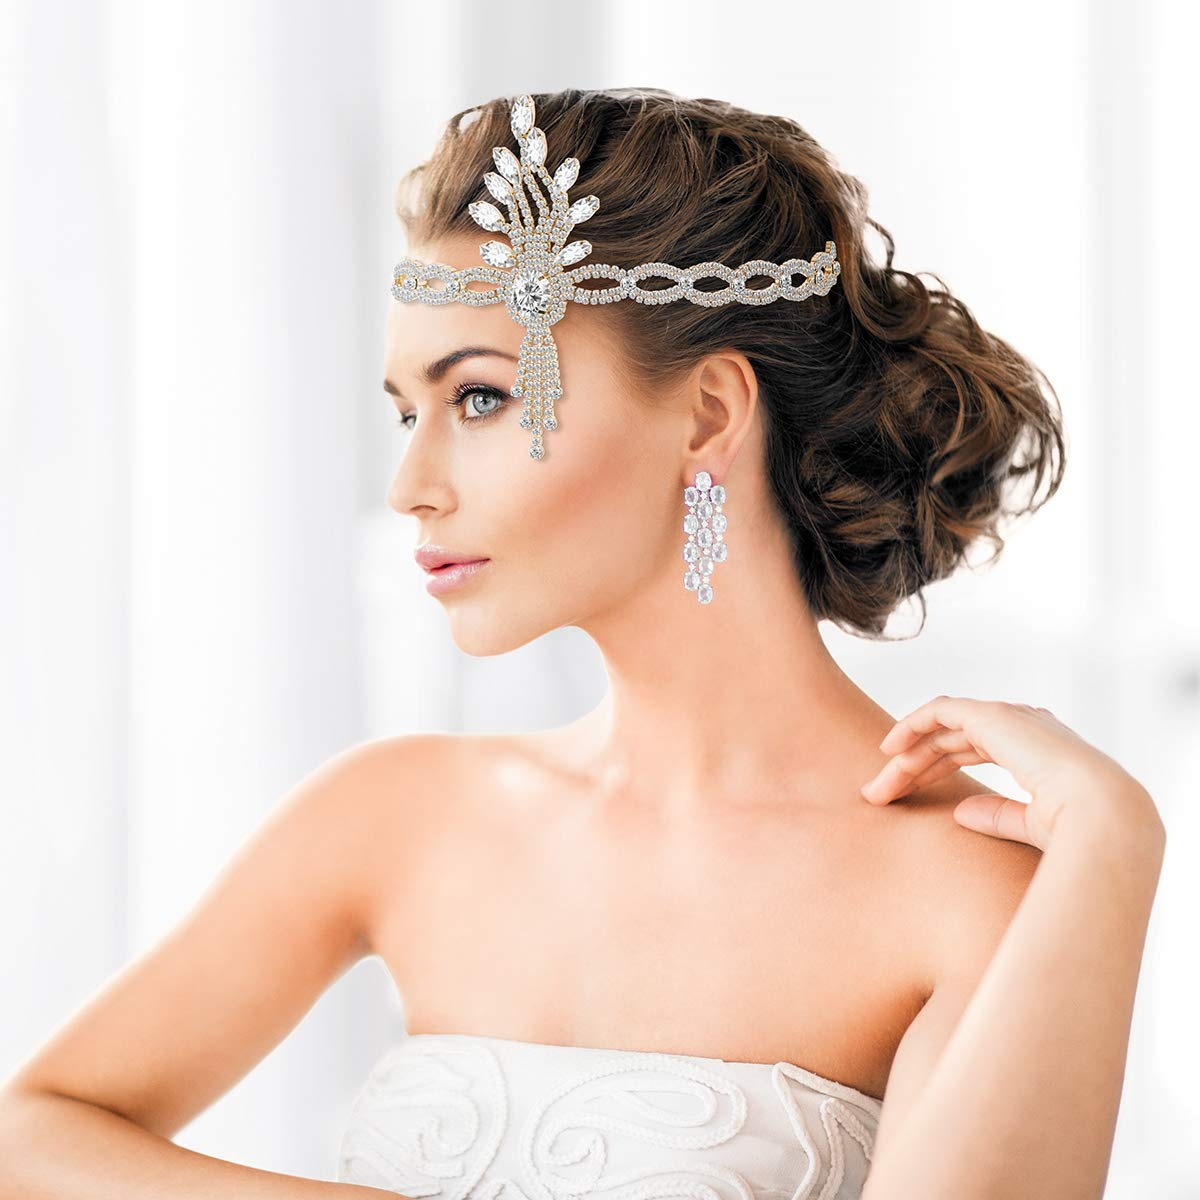 Vintage Headpiece 1920s Leaf Medallion Headband Wedding Bridal Themed Party Hair Accessories for Women